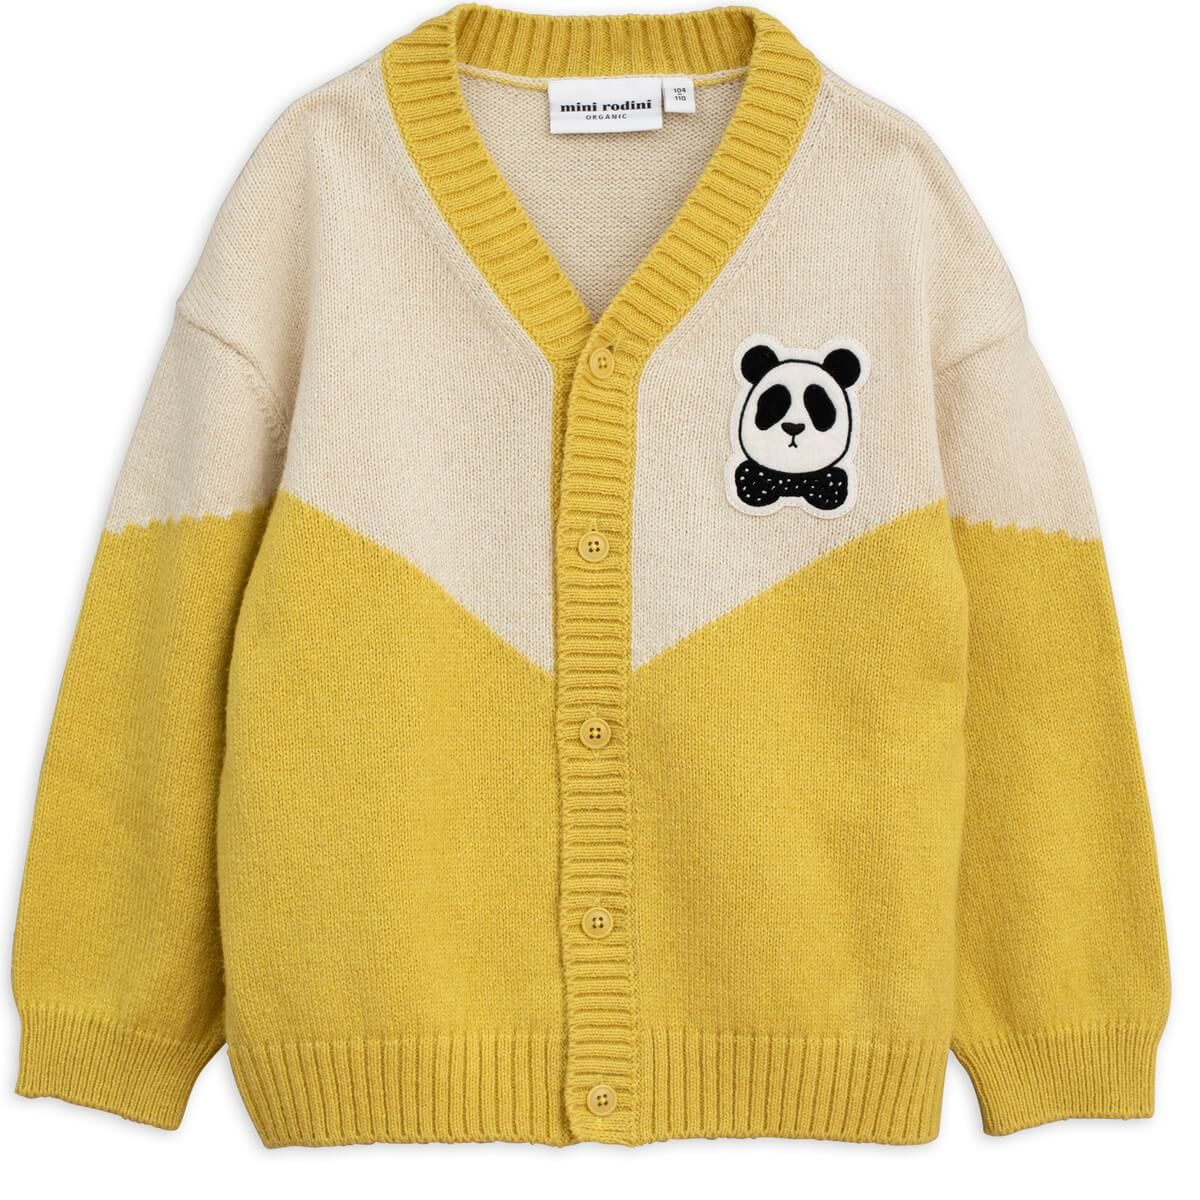 8663707a4 Panda Knitted Cardigan in Yellow by Mini Rodini – Junior Edition ...